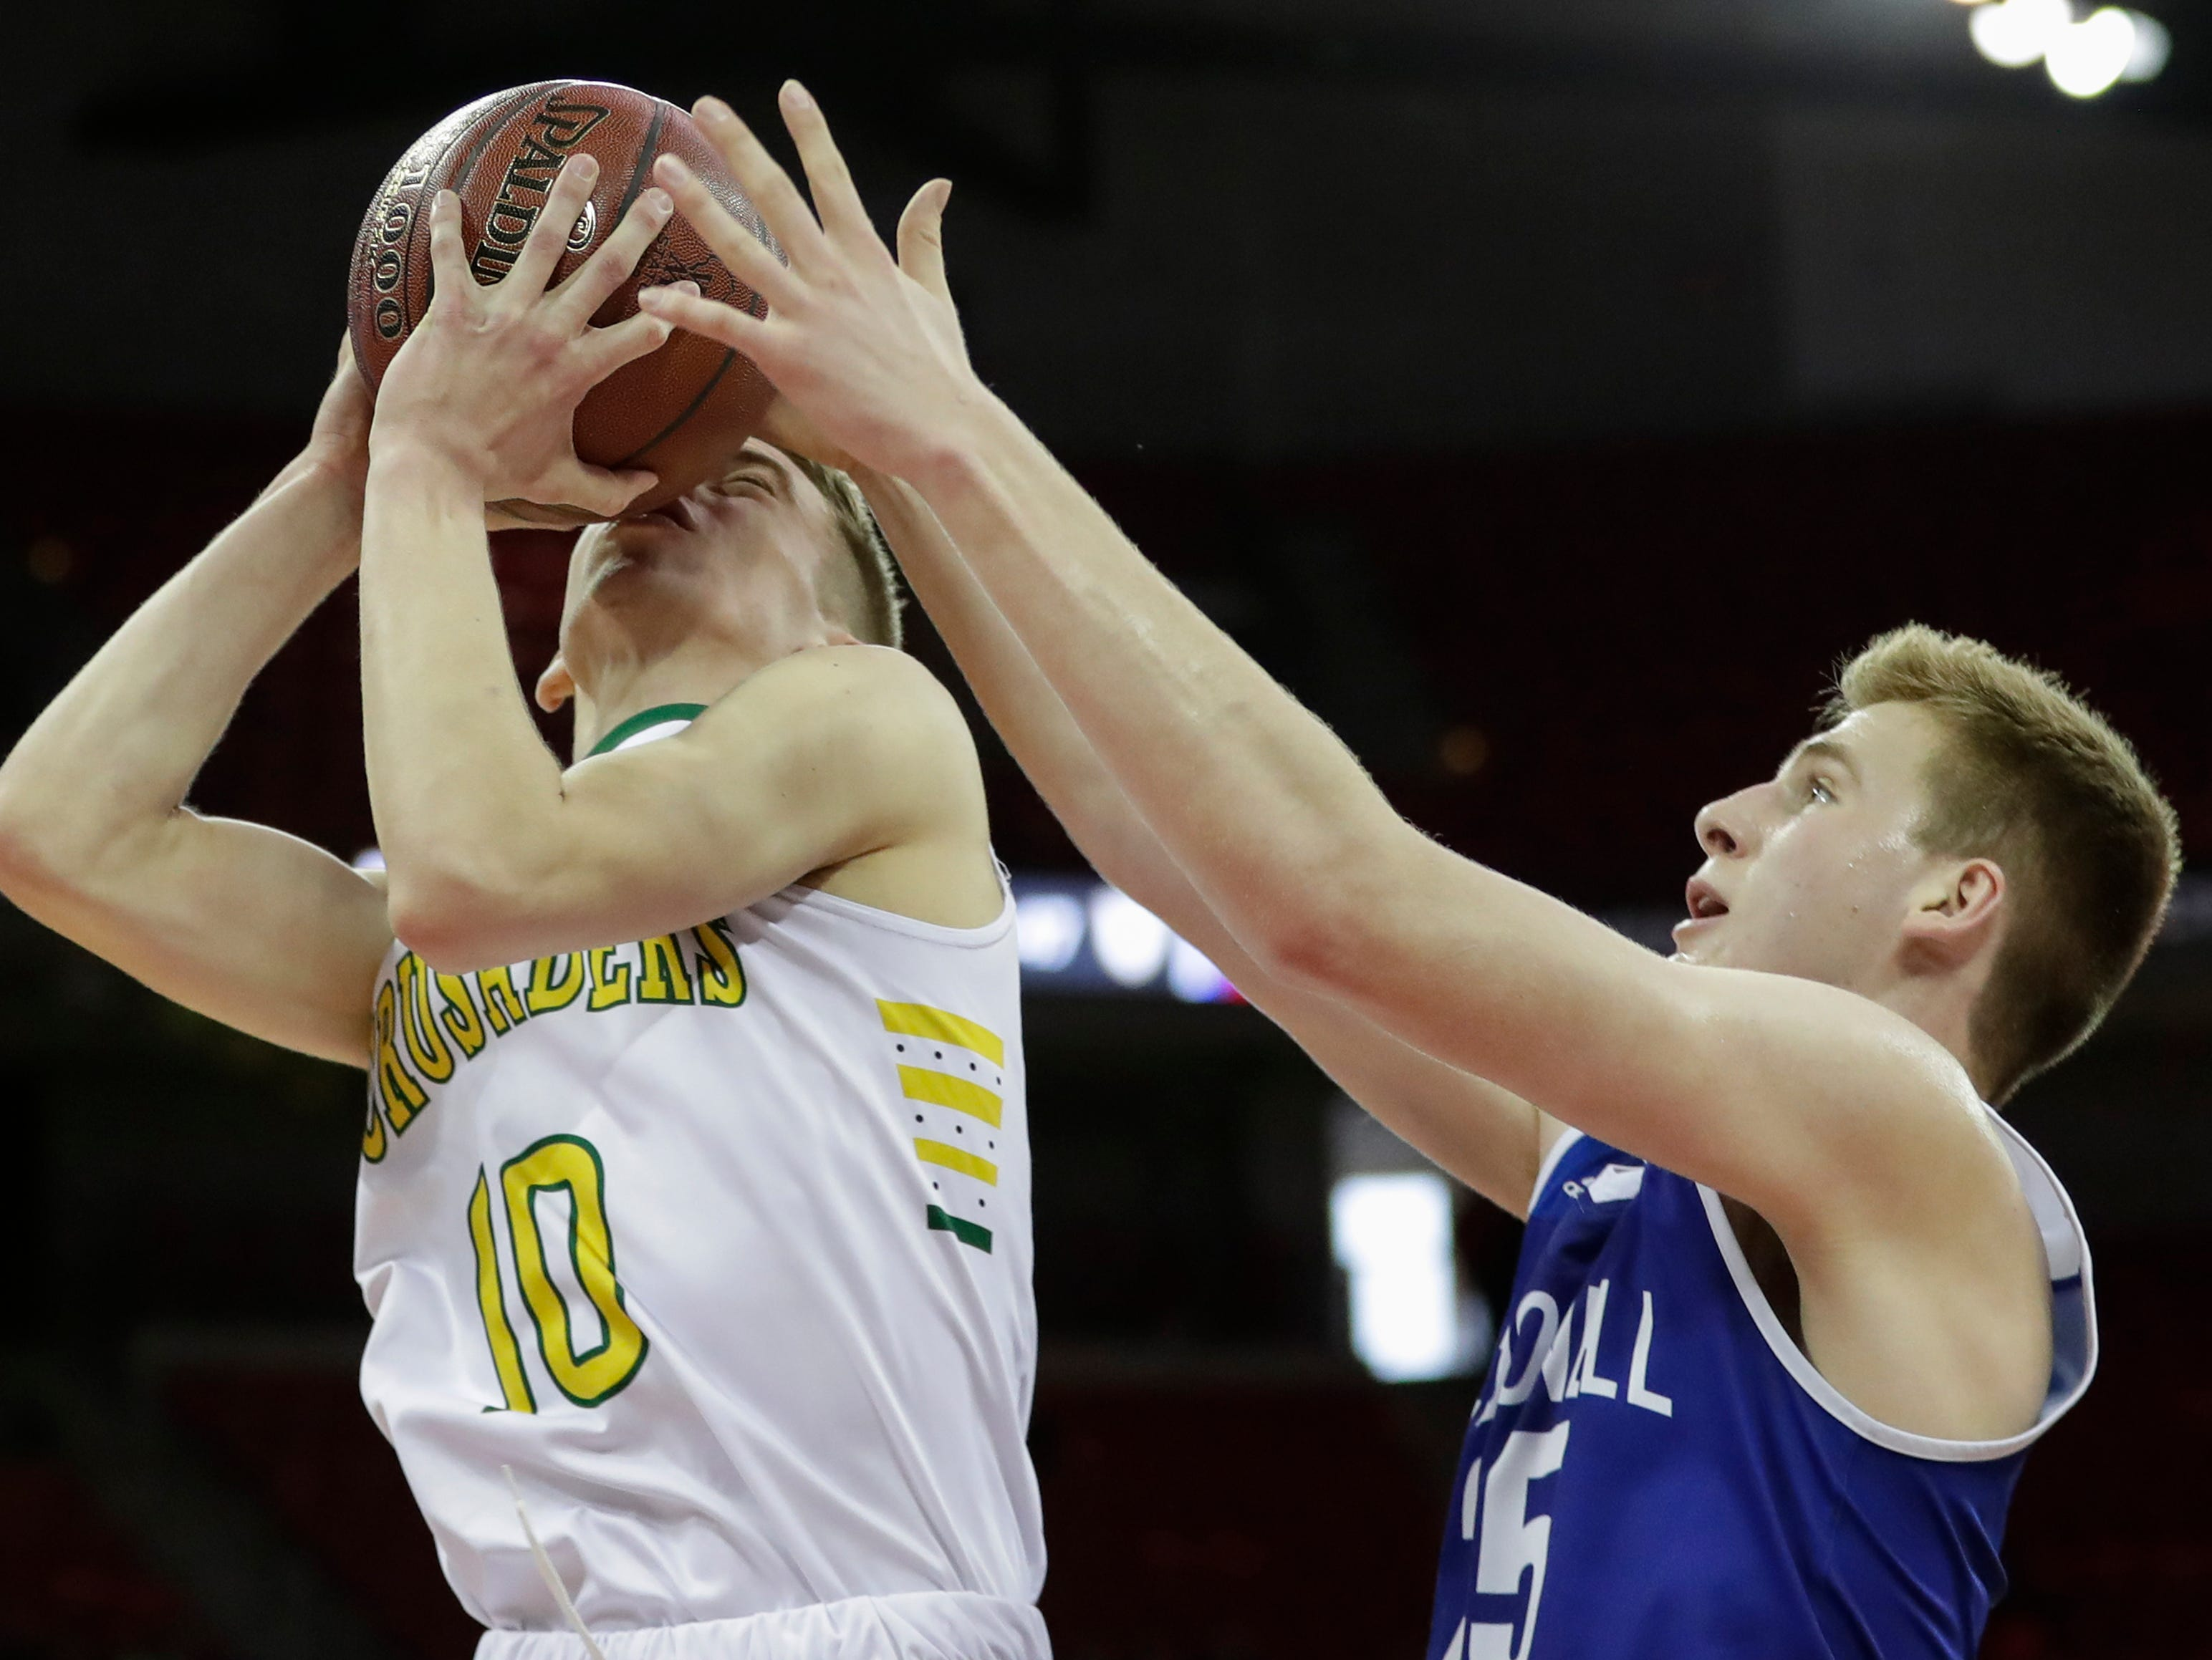 Sheboygan Area Lutheran High School's Graden Grabowski (10) is fouled as he goes up for a shot against McDonell Central Catholic High School's Eion Kressin (25) during their WIAA Division 5 boys basketball state semifinal at the Kohl Center Friday, March 15, 2019, in Madison, Wis.